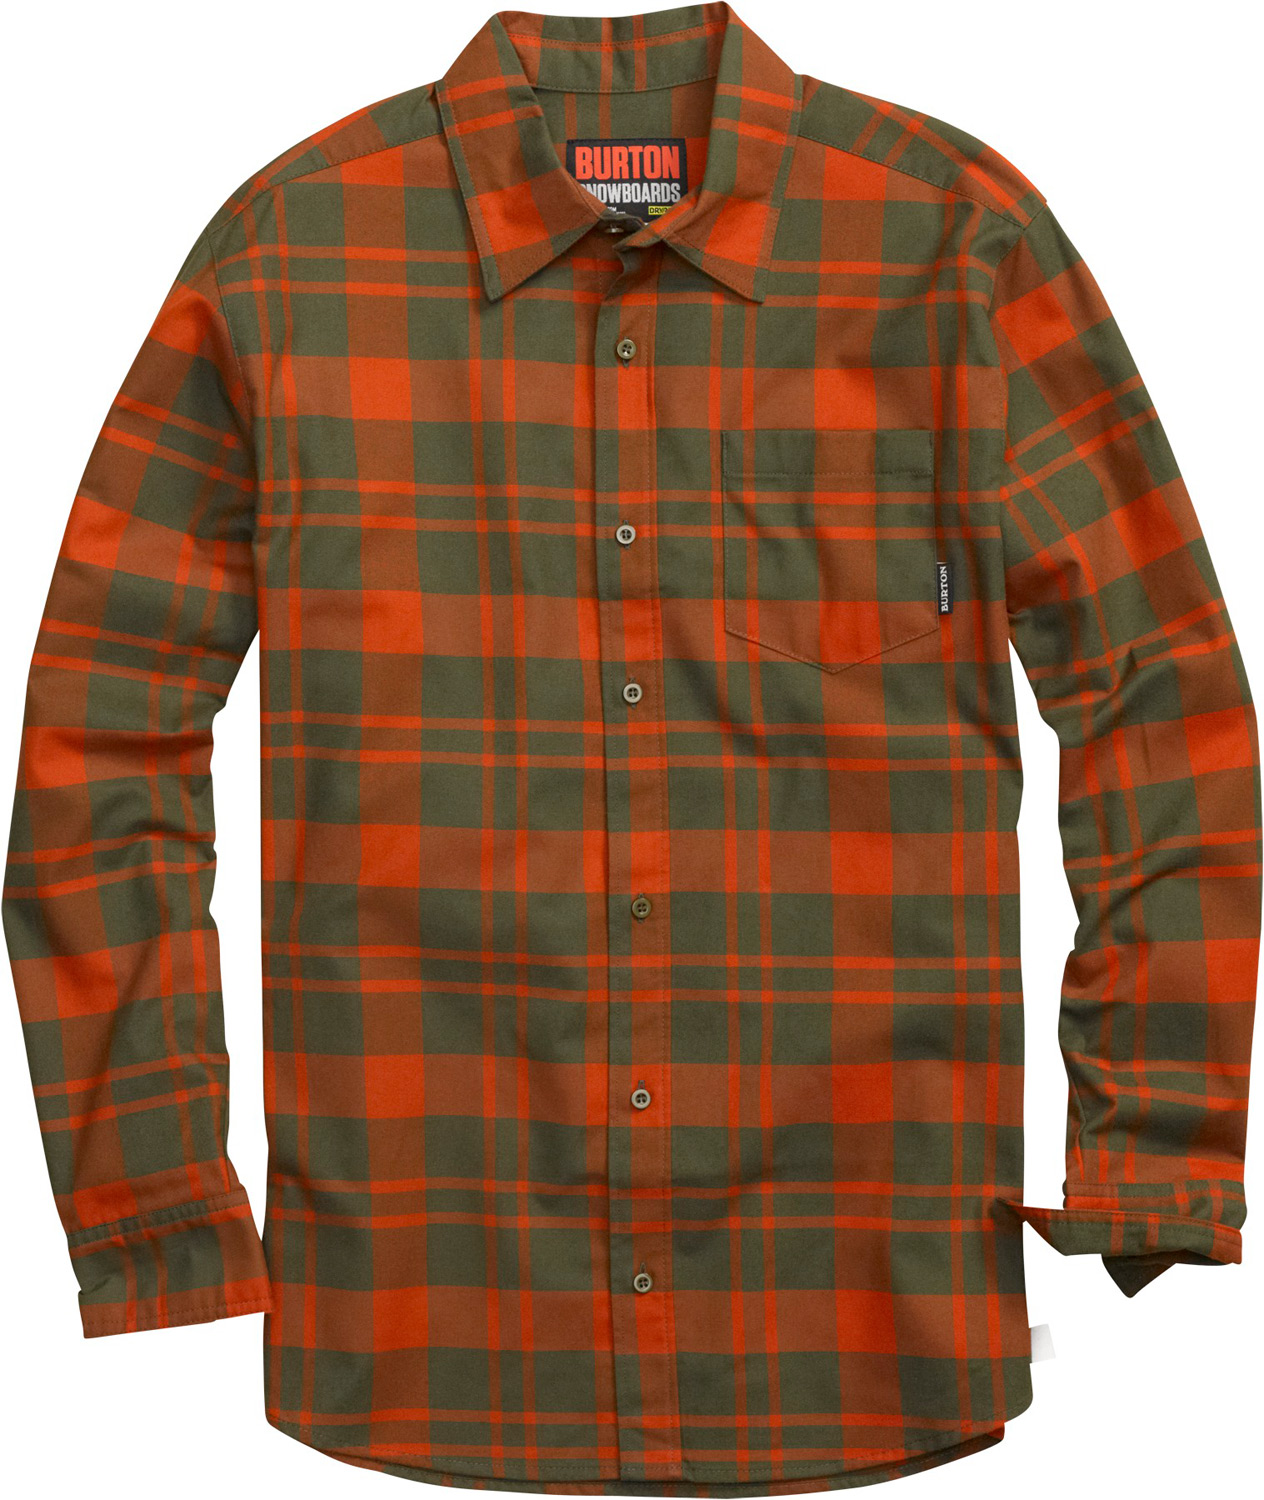 Snowboard Rustic appeal meets modern feel. Quick-drying, stink-fighting flannel for on or off-hill style.Key Features of the Burton Repel Flannel: DRYRIDE Ultrawick Yarn-Dyed Polyester/Cotton Blend Fabric with Mist-Defy Quick-Drying and Highly Breathable Stink-Proof Antimicrobial Finish Chest Pocket Button-Up Closure - $74.95